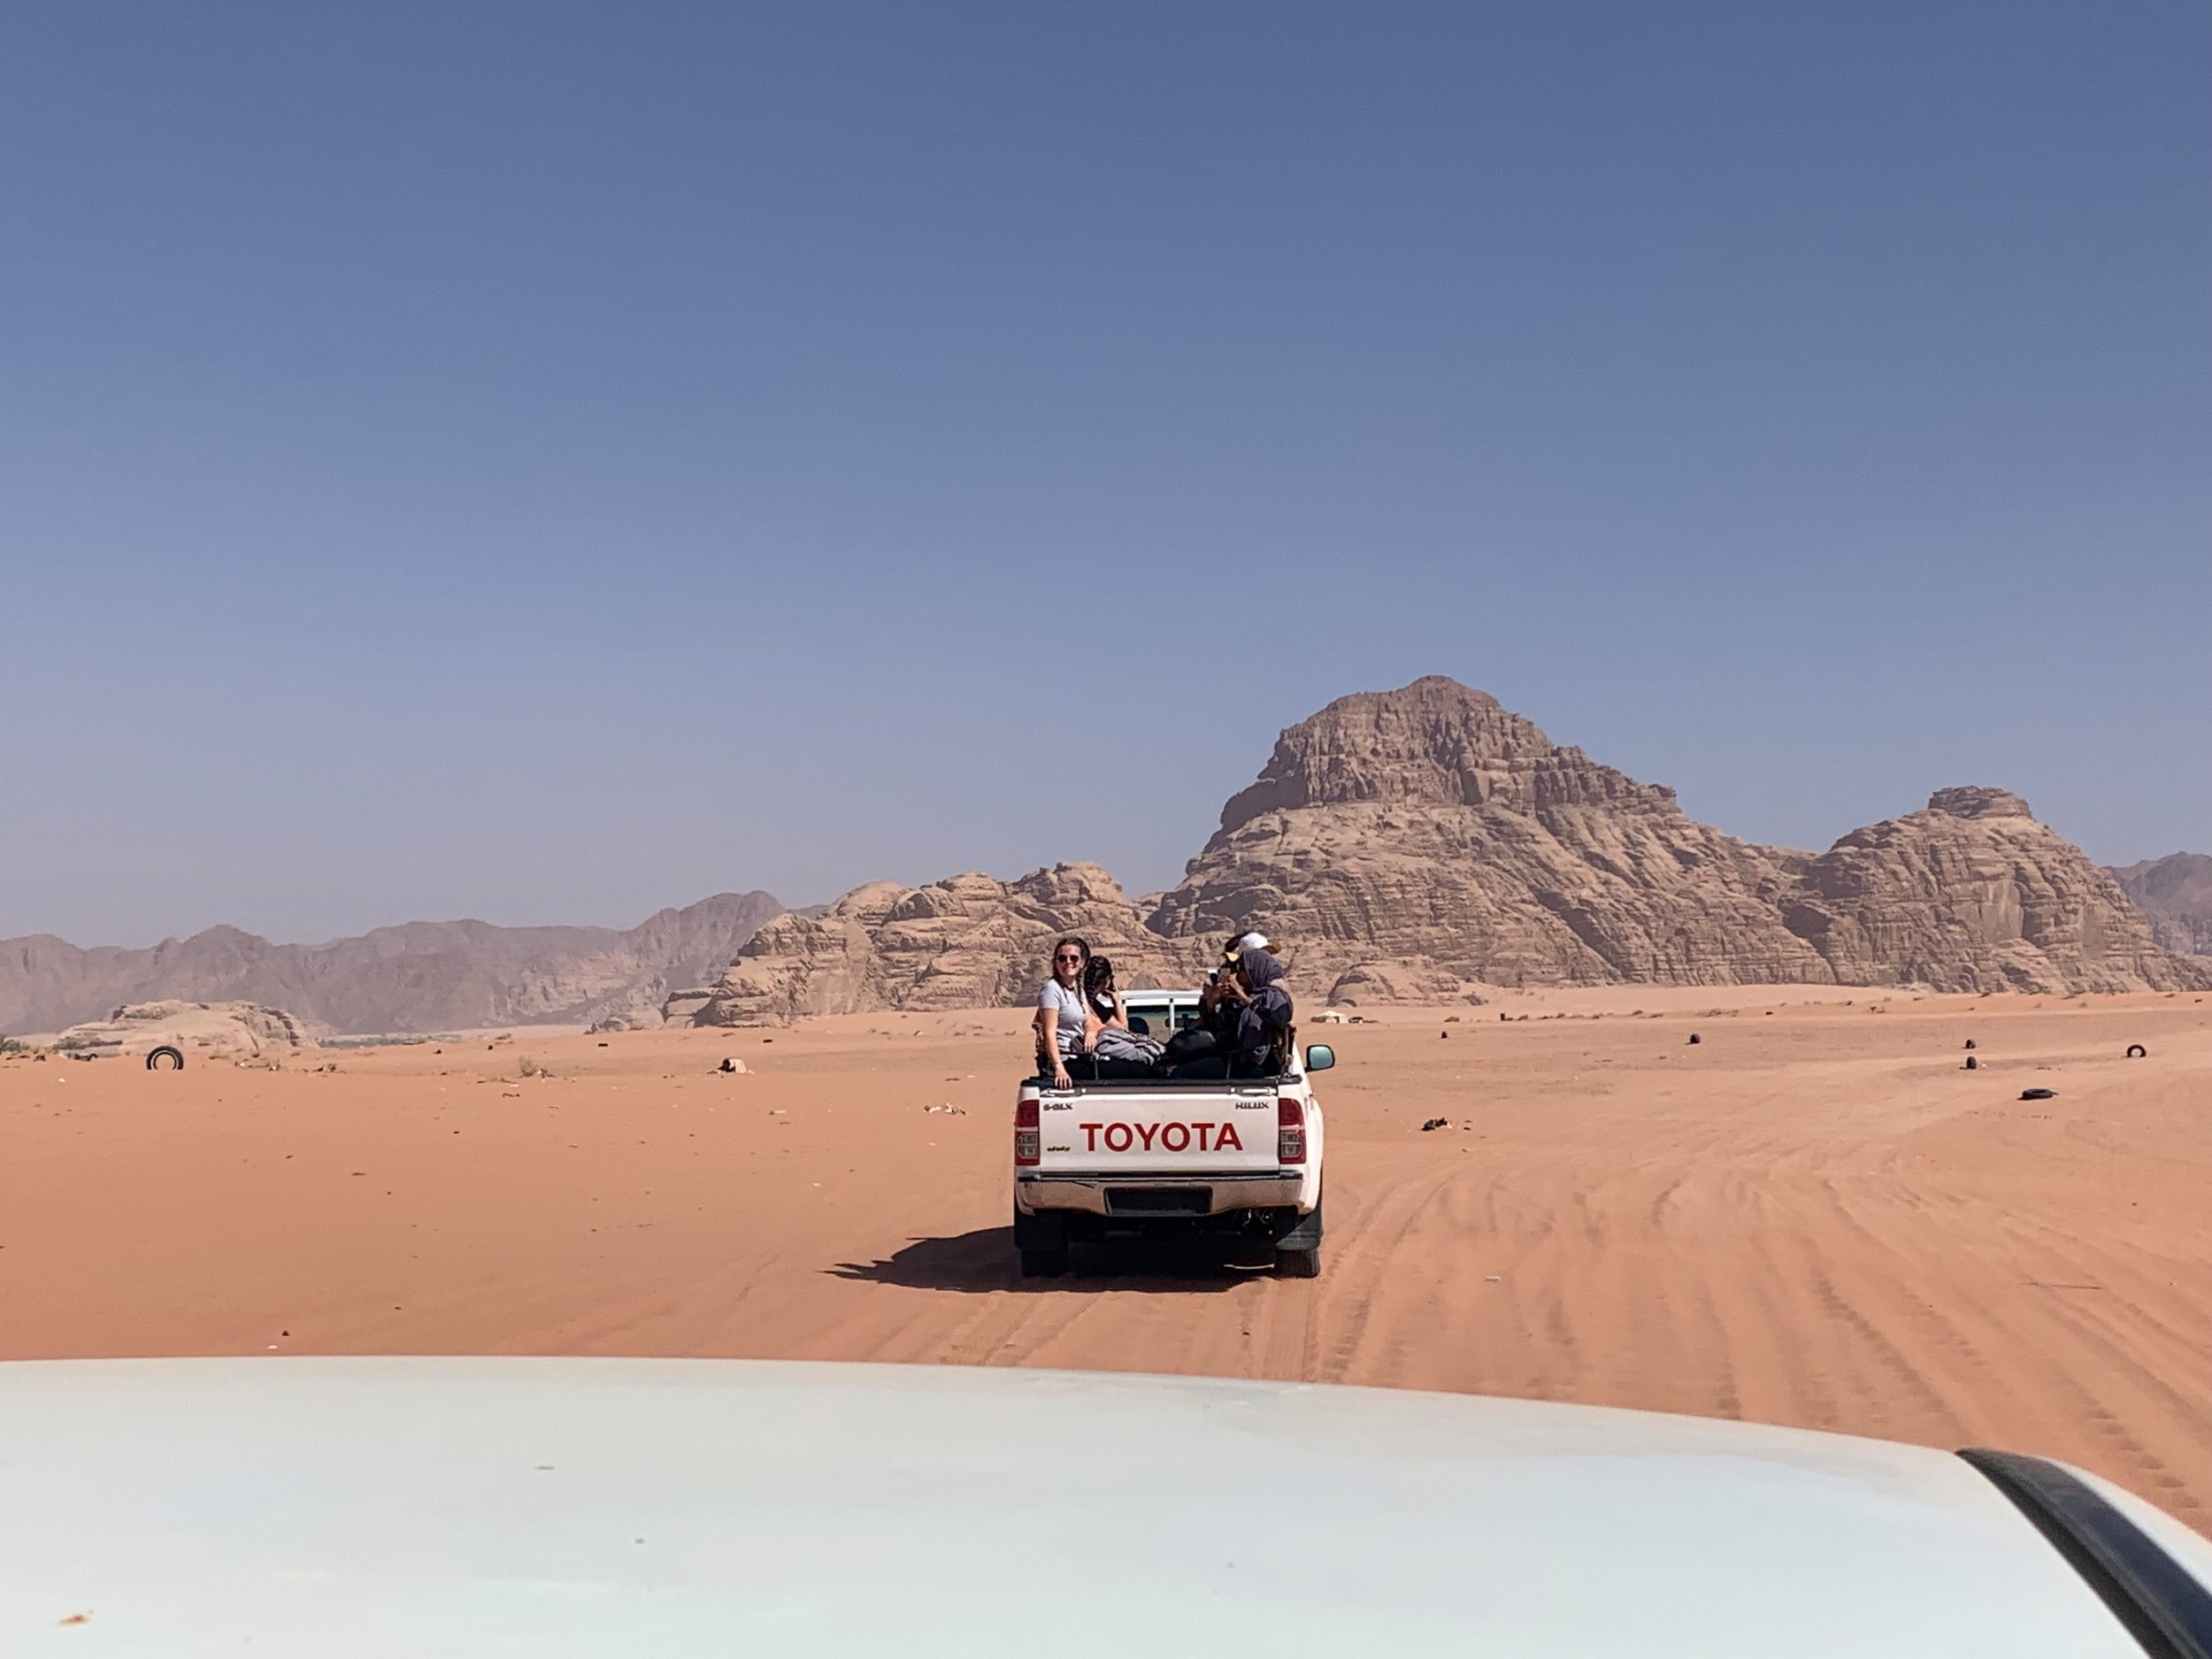 Our Jeep tour of Wadi Rum, we all hoped to race each other and see who could be faster! While on the jeep tour, we saw ancient rock carvings and messages, met with local bedouins, and saw the beauty that is Wadi Rum. Photo credit: Russo, 2019